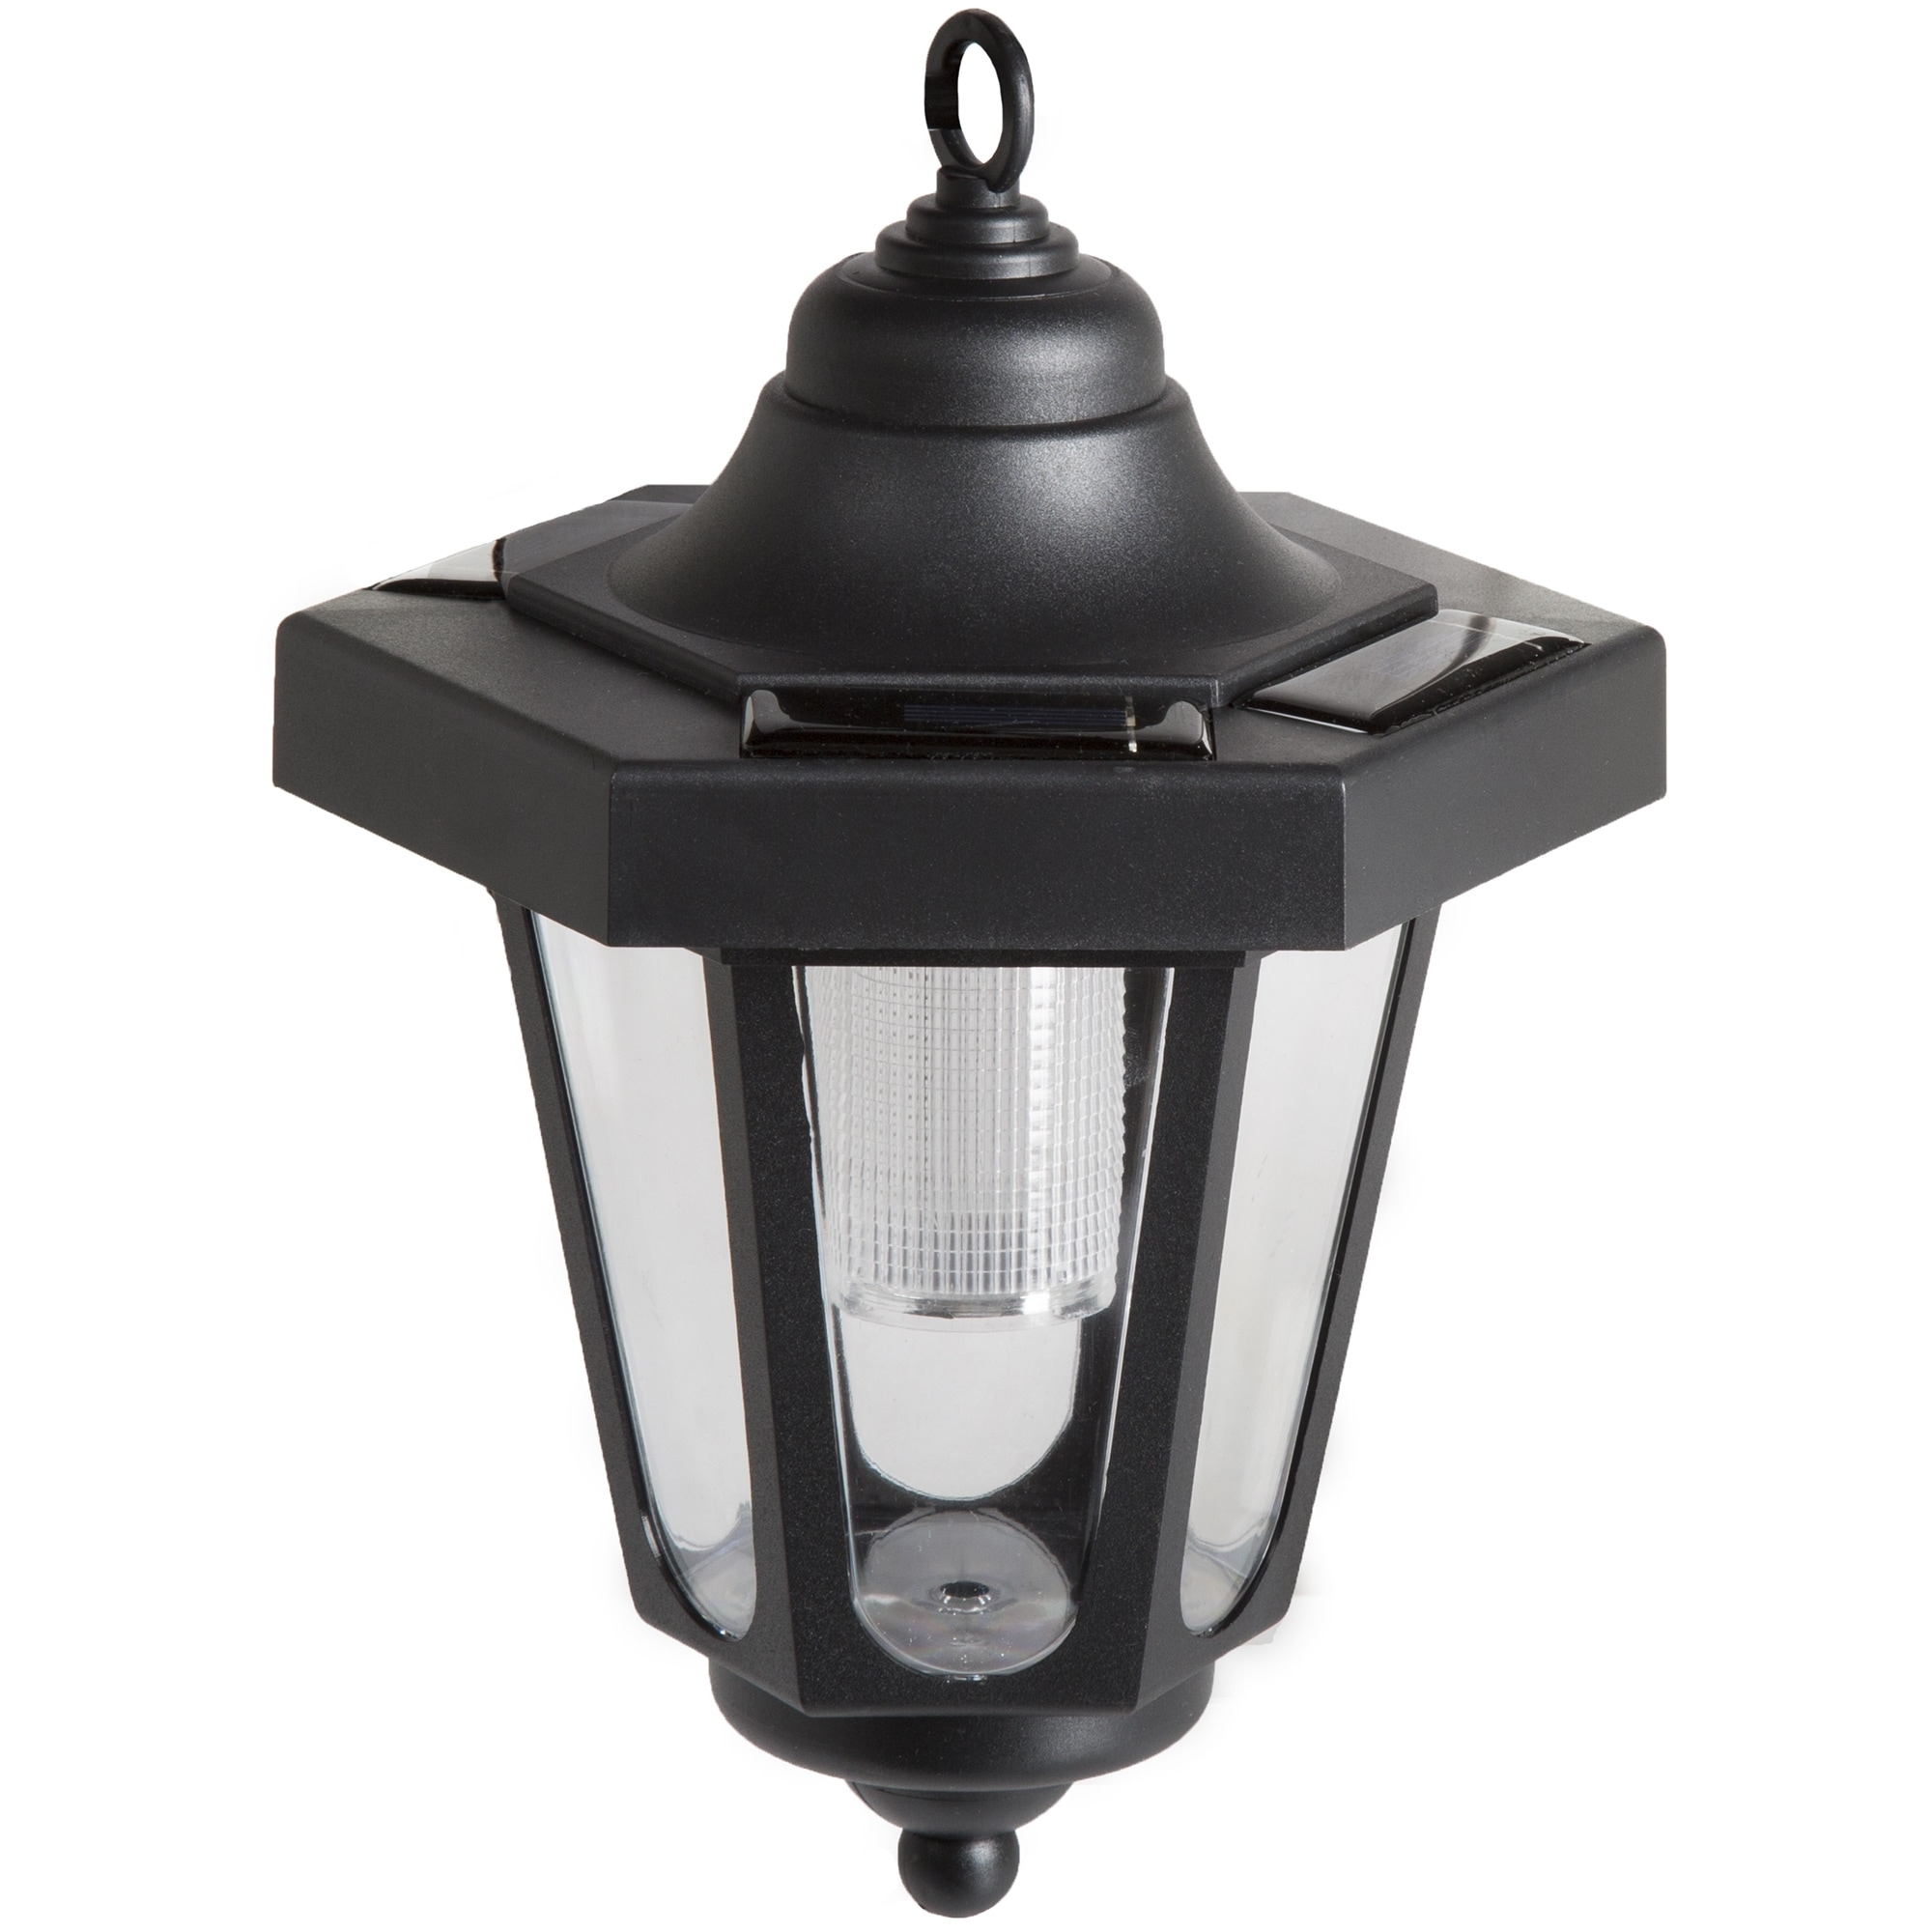 Pure Garden Solar Led Black Hanging Coach Lantern (Set Of 2) – Free Intended For Outdoor Hanging Coach Lanterns (View 13 of 15)